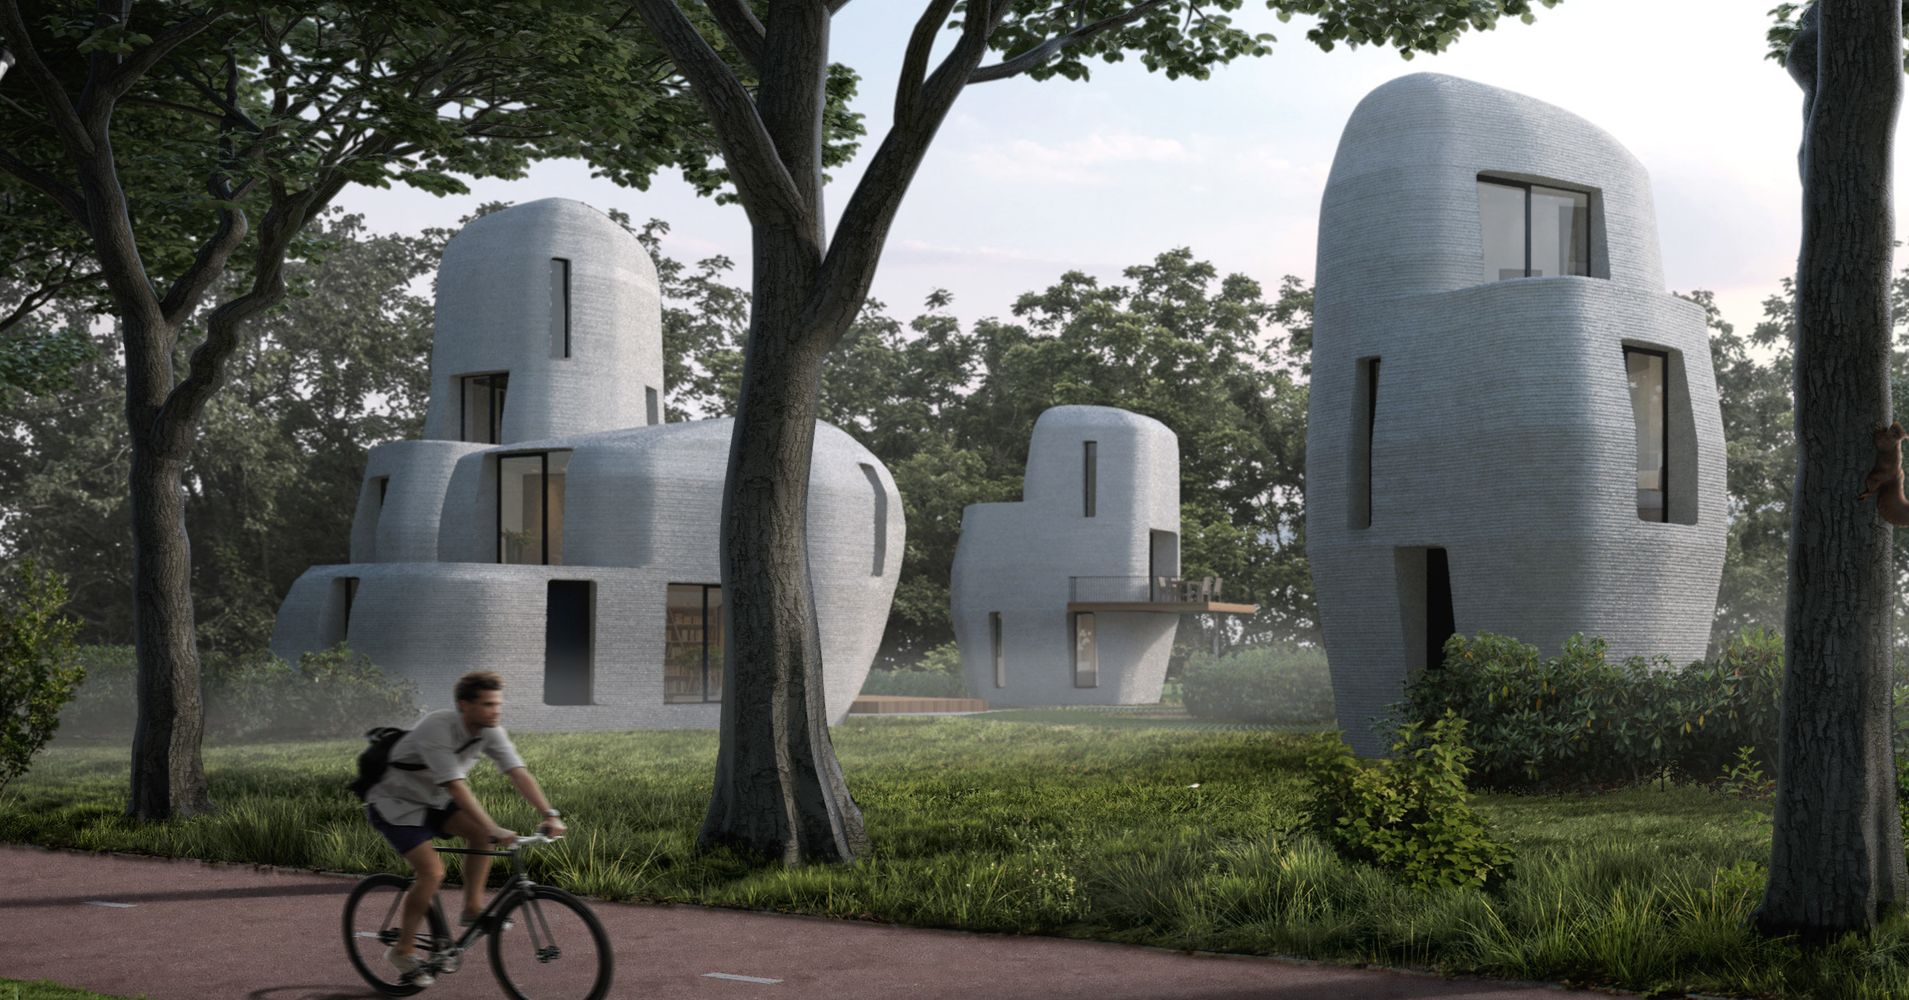 The Netherlands Plans To Build World's First Habitable 3D